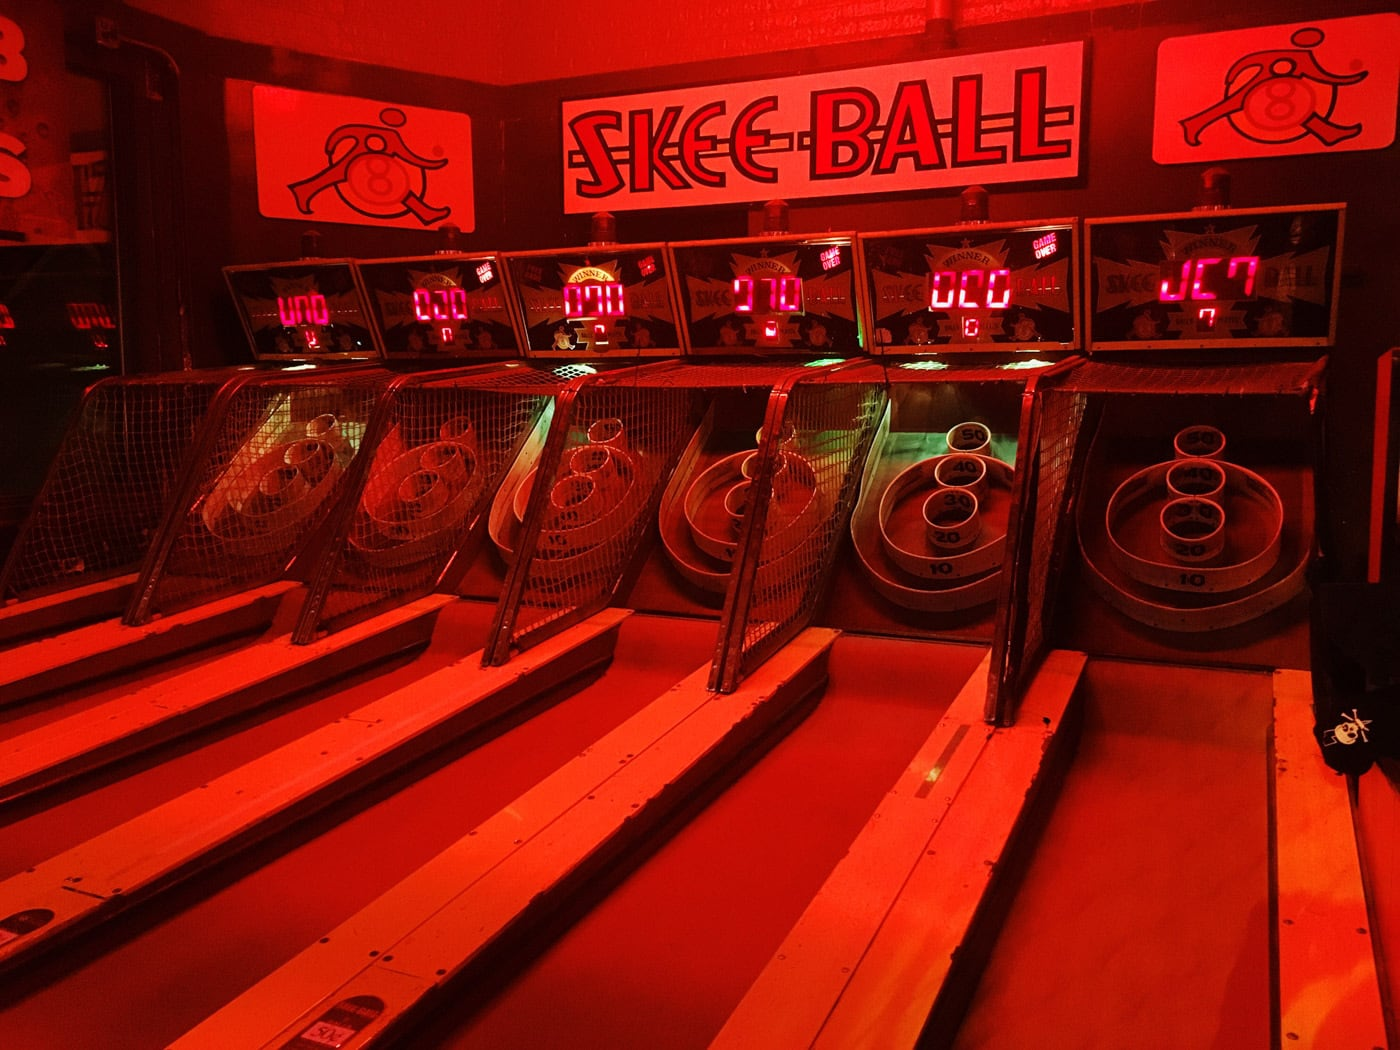 I joined a skee ball league.